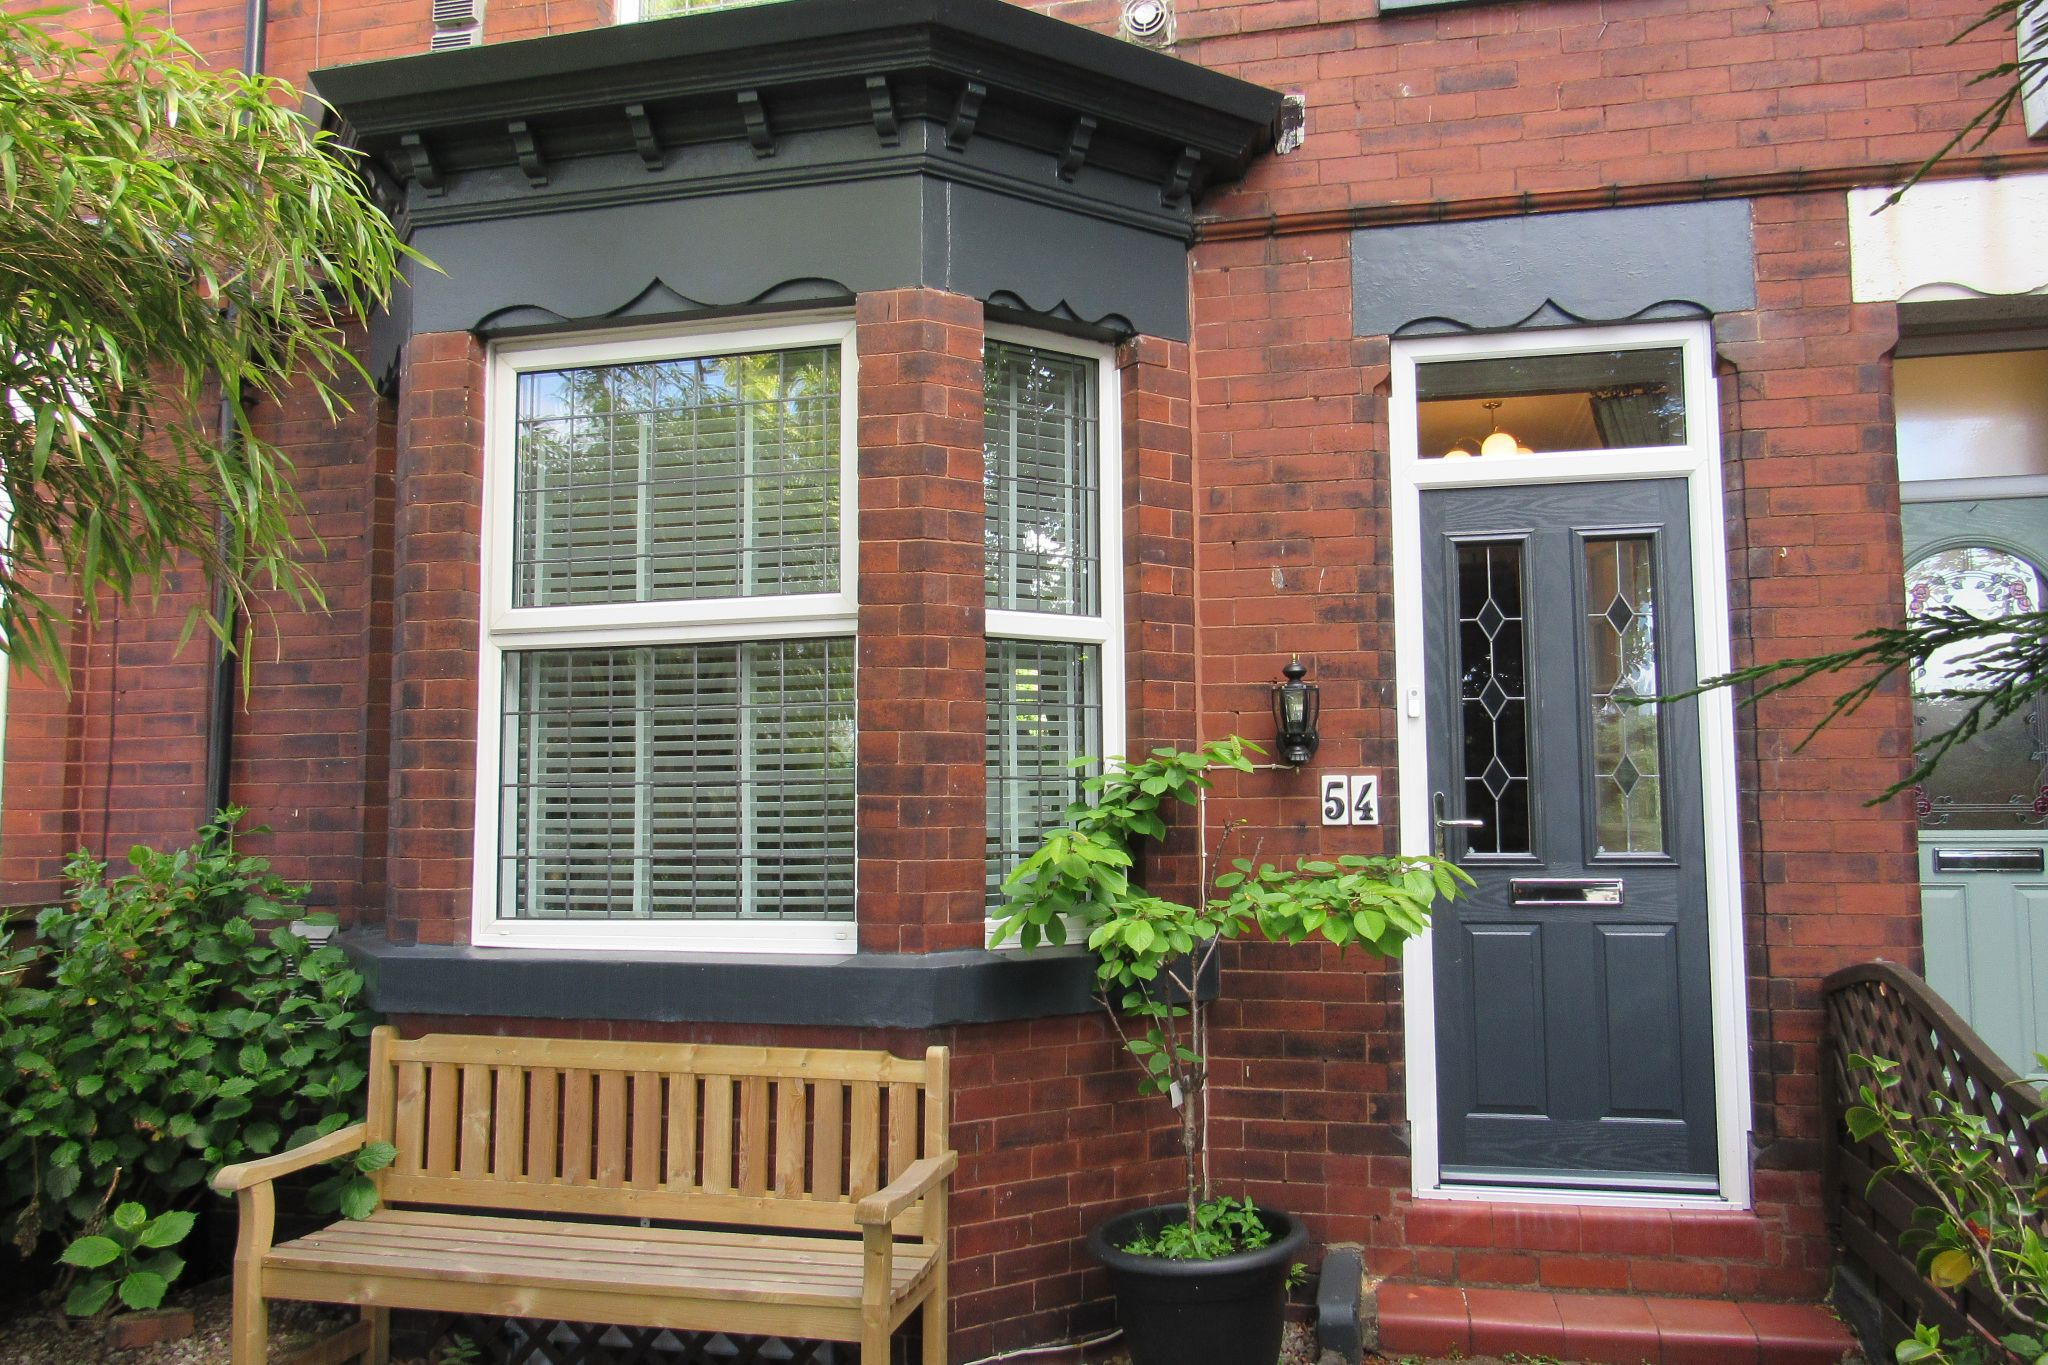 3 bedroom mid terraced house Sale Agreed in Stockport - Photograph 2.